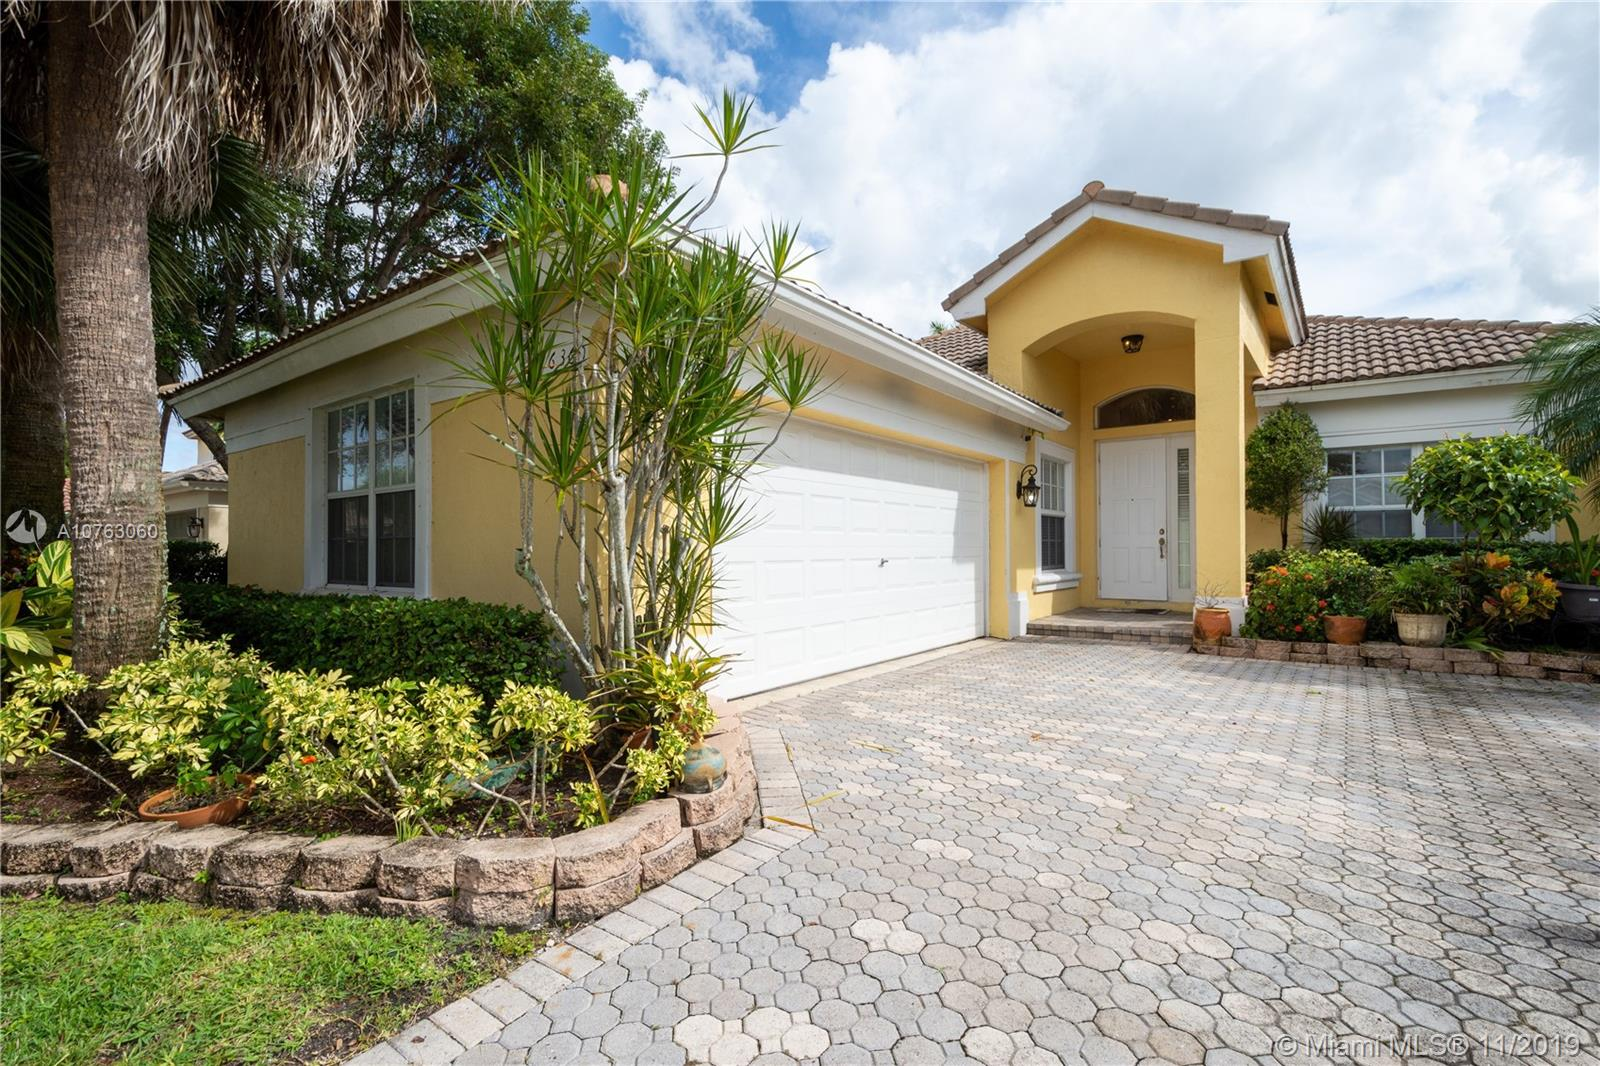 "Very nice inviting home  with large fenced in yard and covered patio overlooking gorgeous tranquil water views. 20"" tile on diagonal. Wood floors in master bedroom. Upgraded kitchen w/42"" wood cabinets, granite counters & backsplash, and S/S appliances. Speaker system throughout house. This won't last so hurry up and check it out! Guard gated community with Clubhouse, pool, exercise room, basketball, tennis, tot lot, plus more."